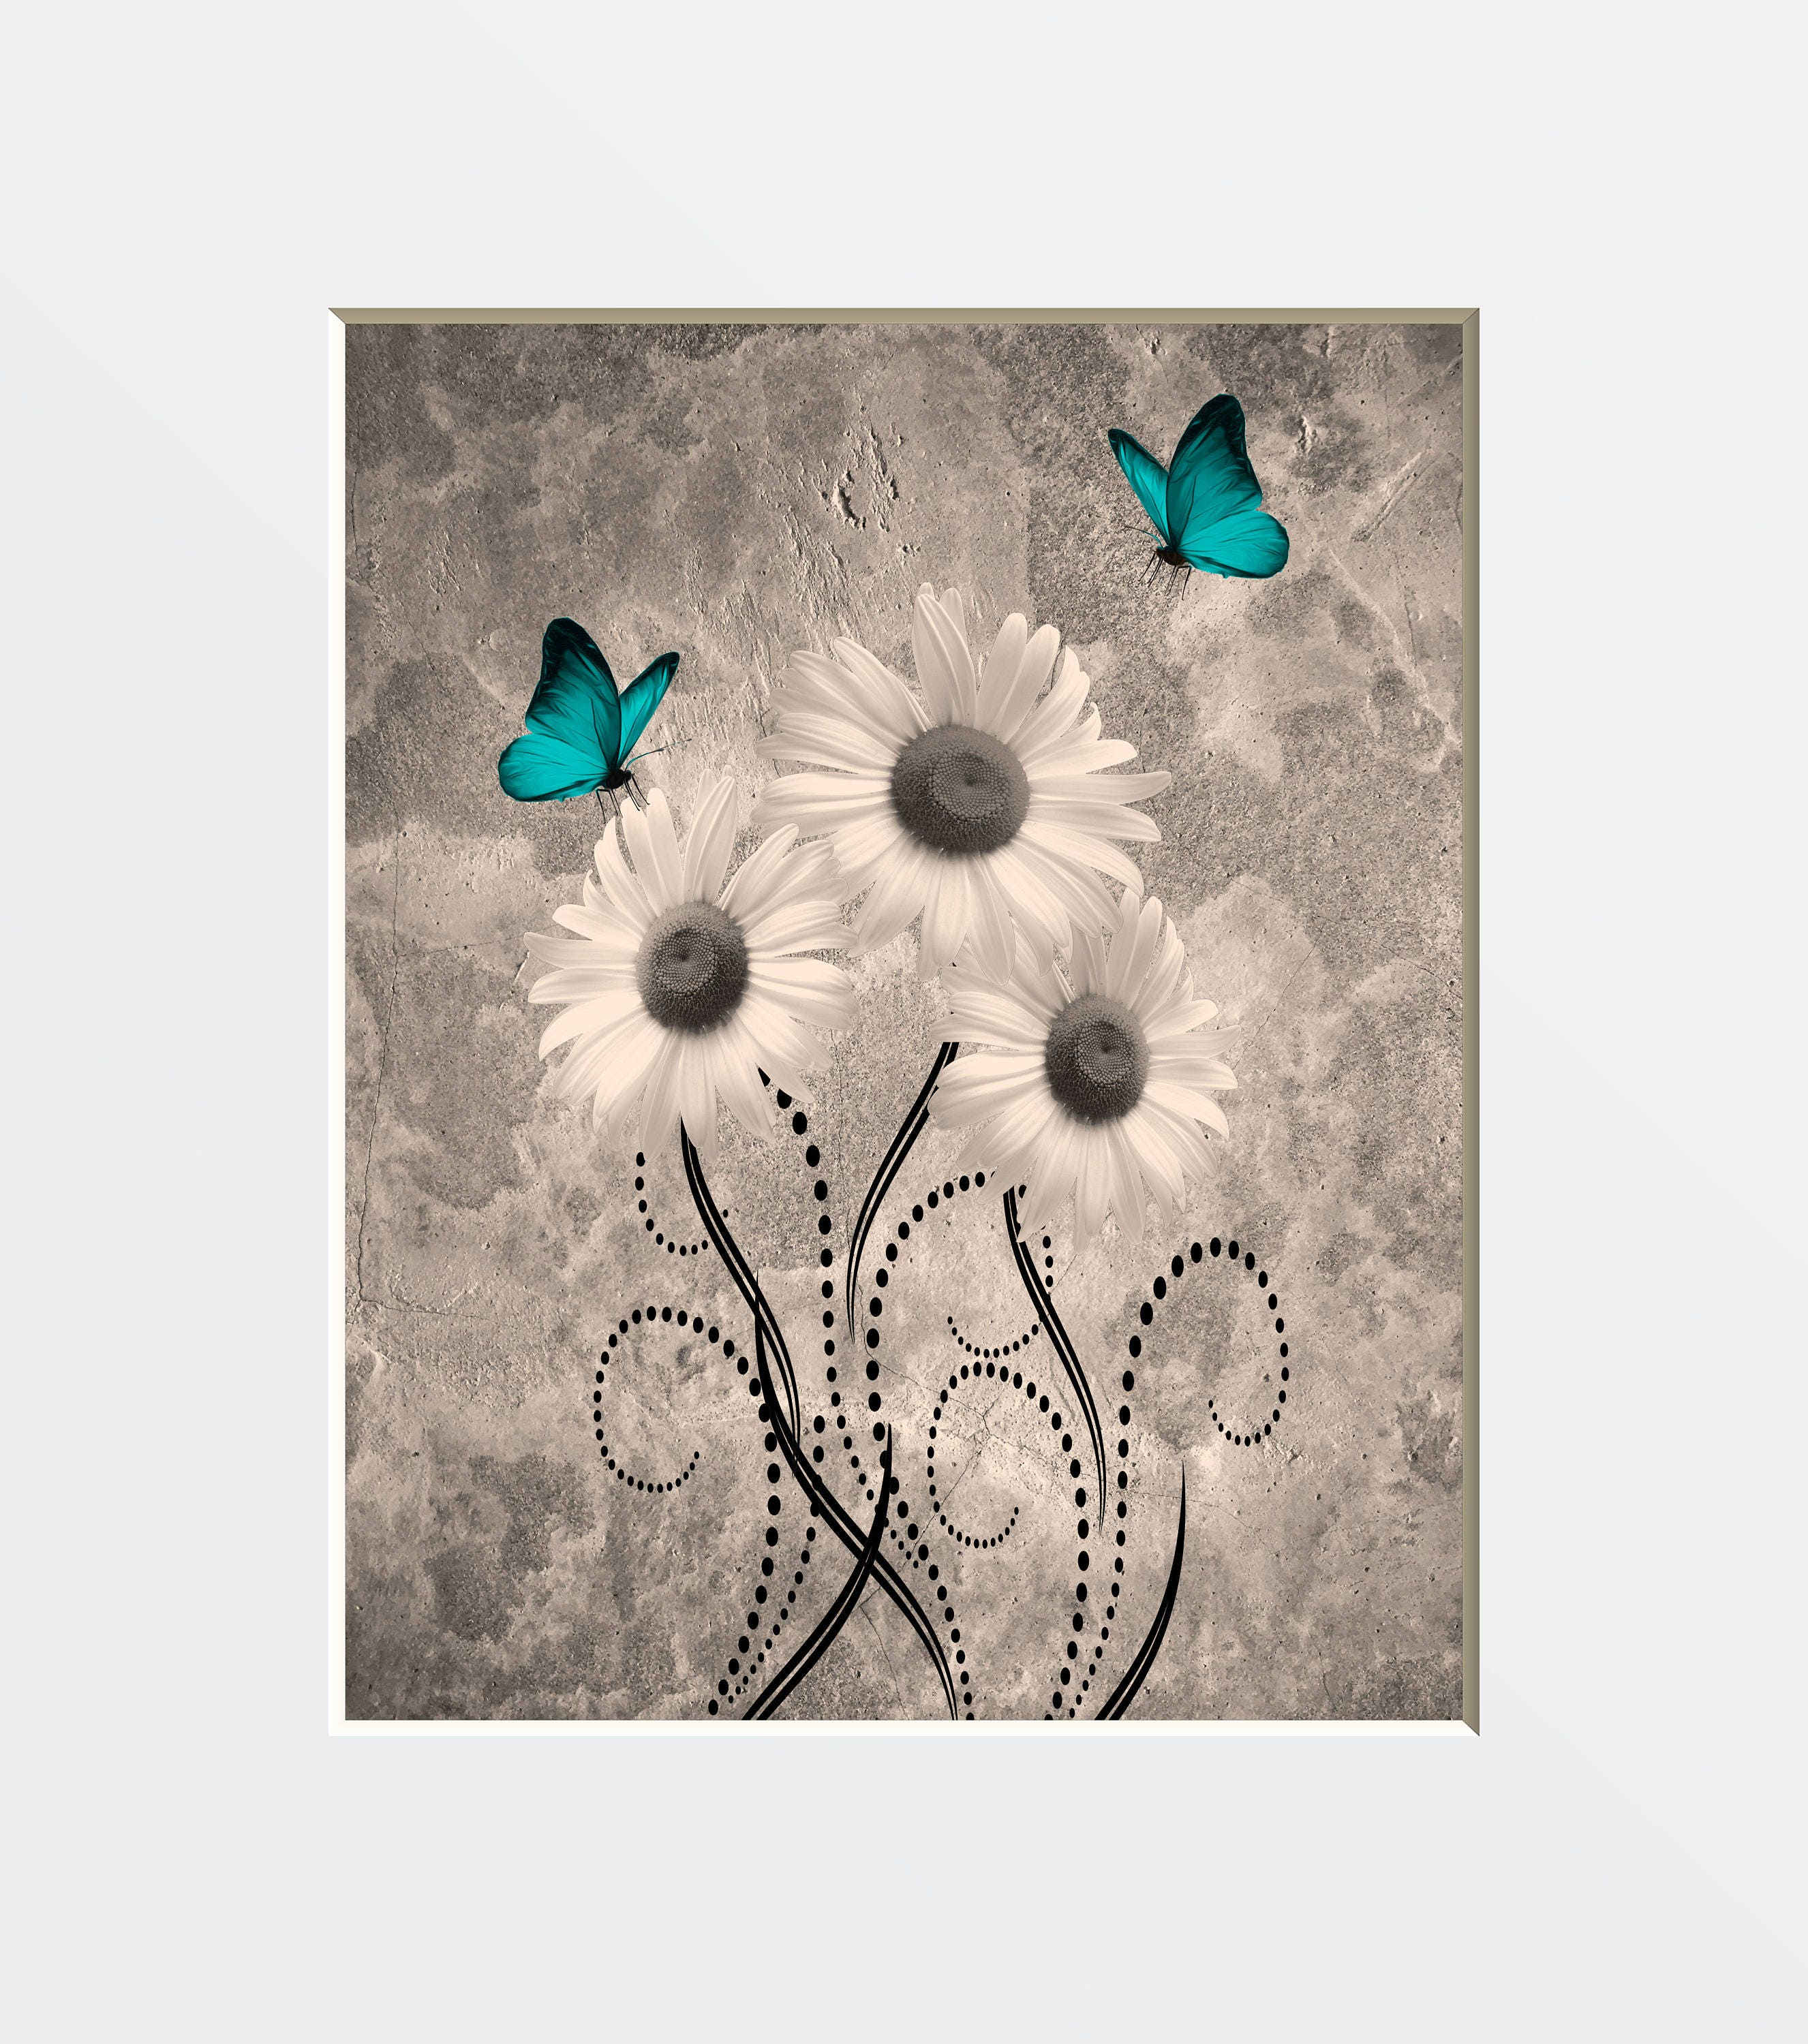 daisy wall art teal brown wall decor daisy flowers. Black Bedroom Furniture Sets. Home Design Ideas